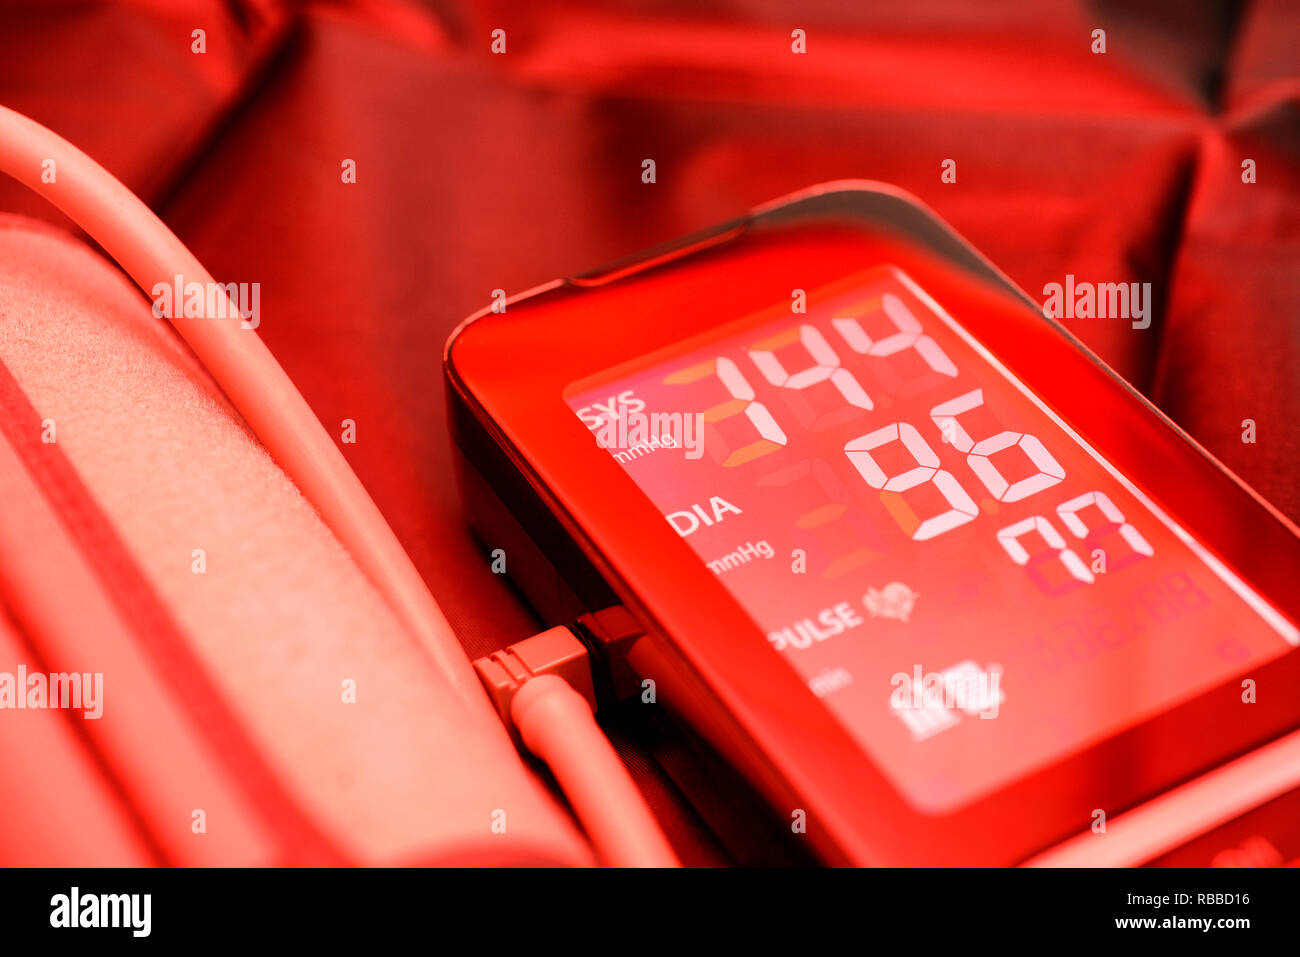 equipment for measuring blood pressure in red colors. - Stock Image